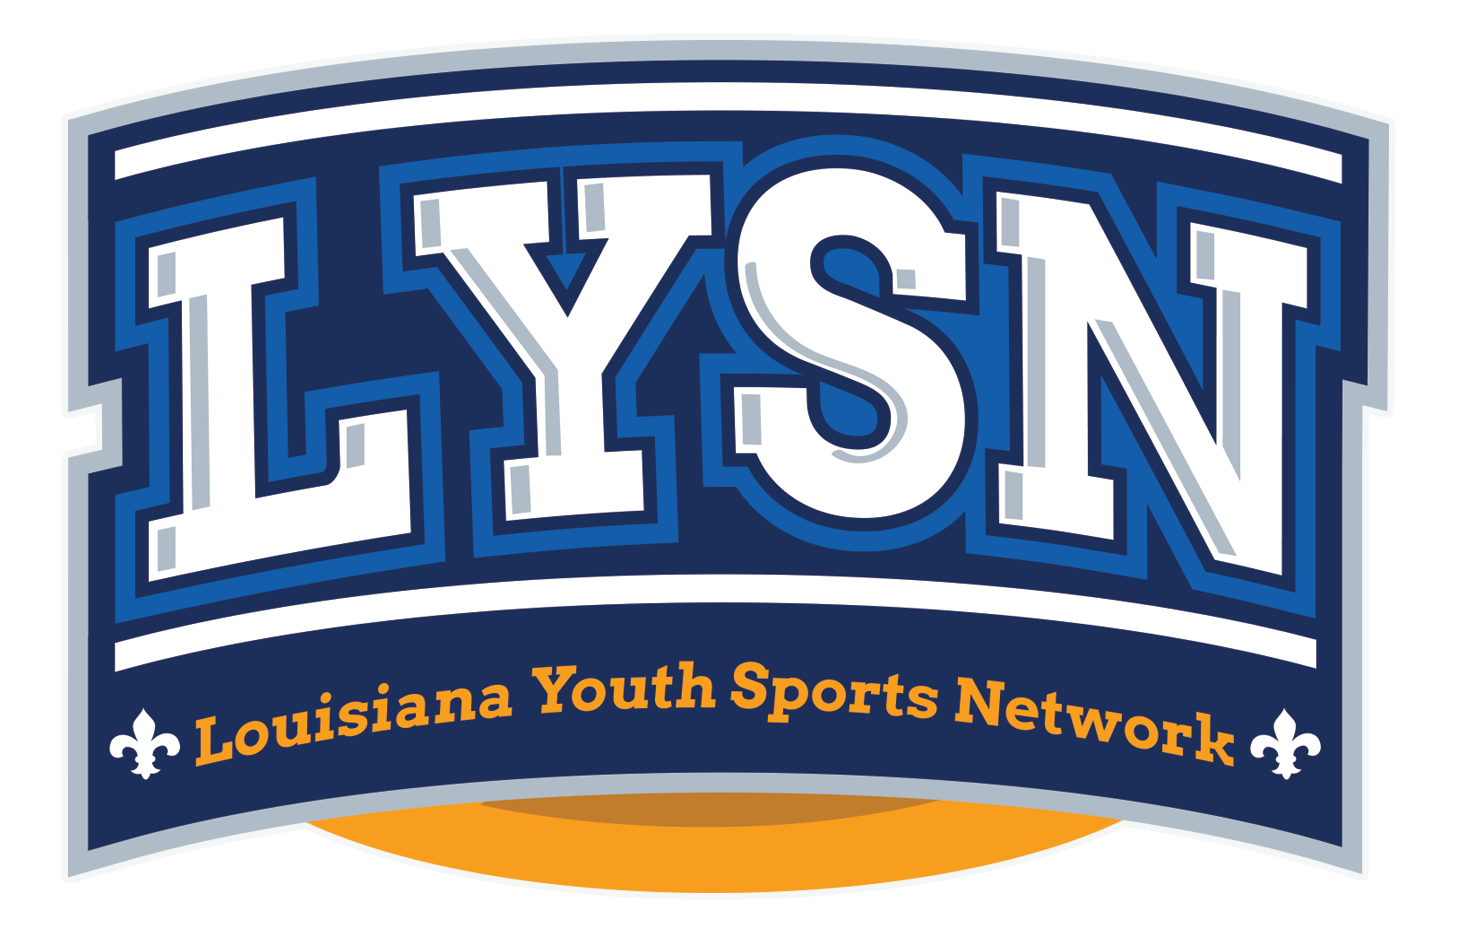 Louisiana Youth Sports Network